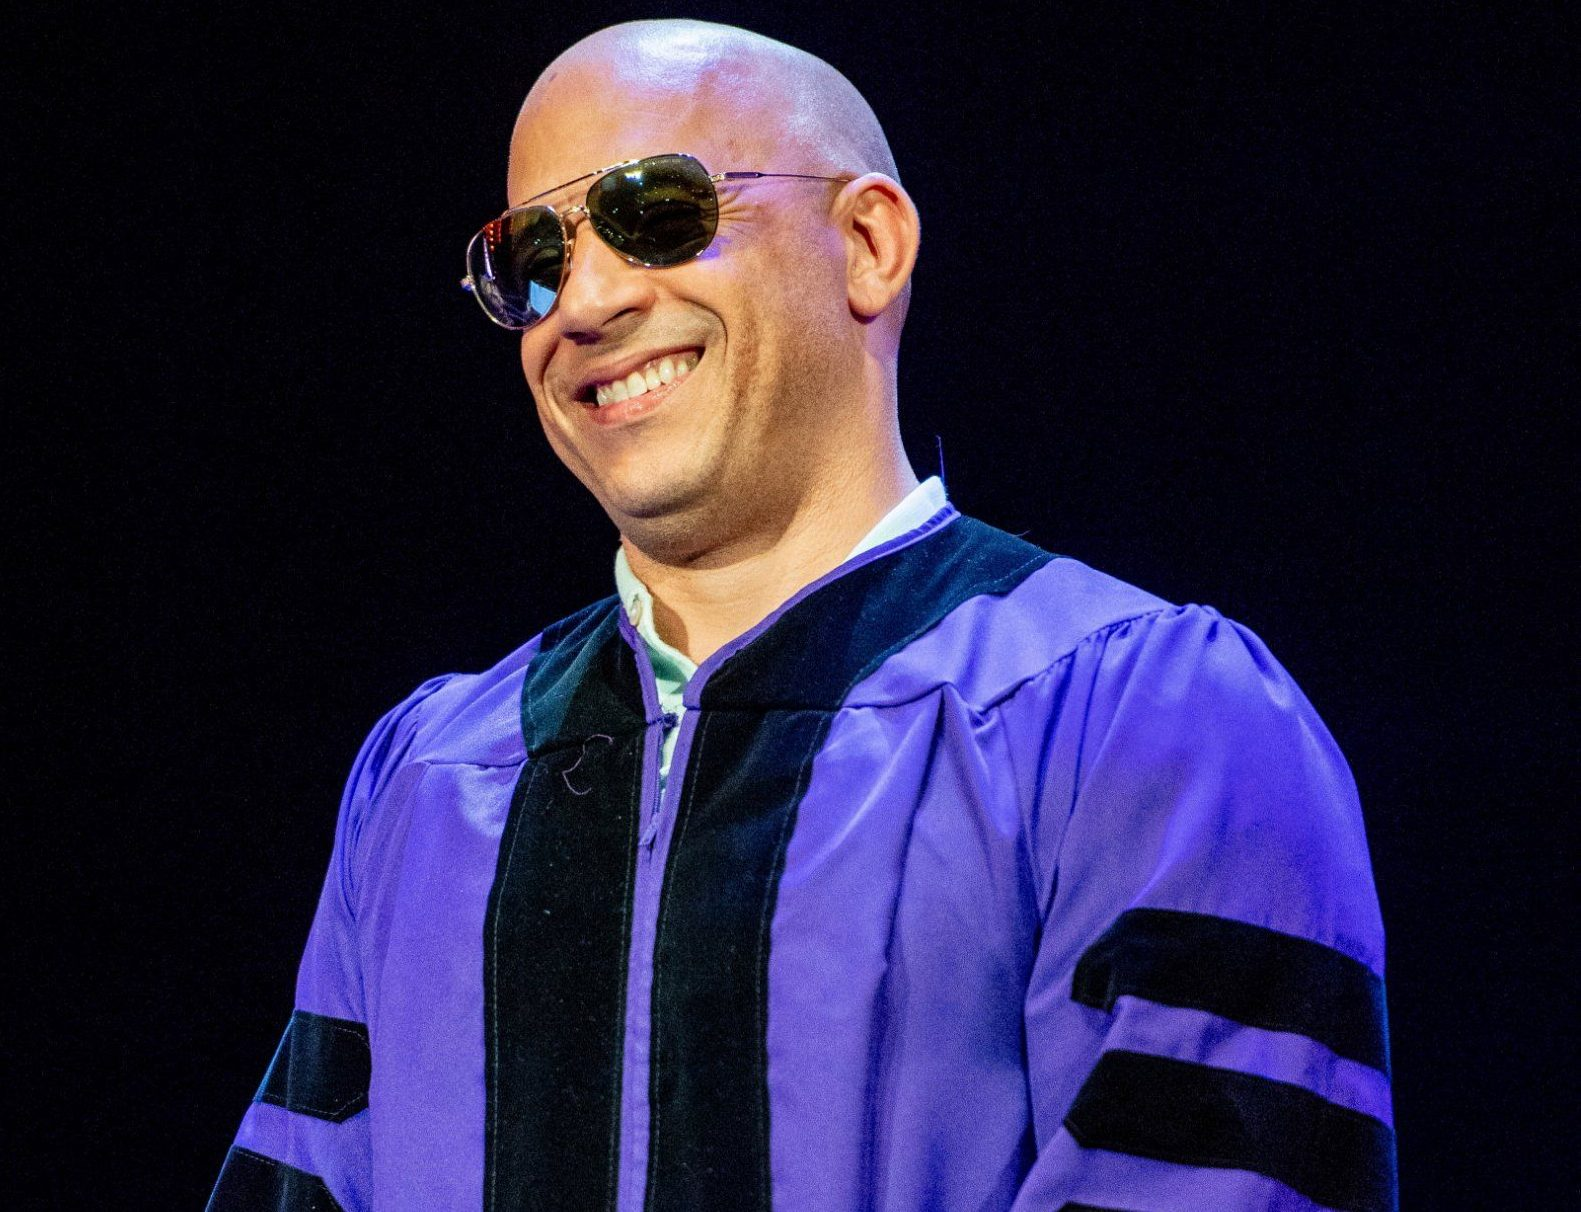 NEW YORK, NY - MAY 30: Actor Vin Diesel receives his Honorary Doctor of Humane Letters during the Hunter College 2018 Commencement ceremony at Radio City Music Hall on May 30, 2018 in New York City. (Photo by Roy Rochlin/Getty Images)